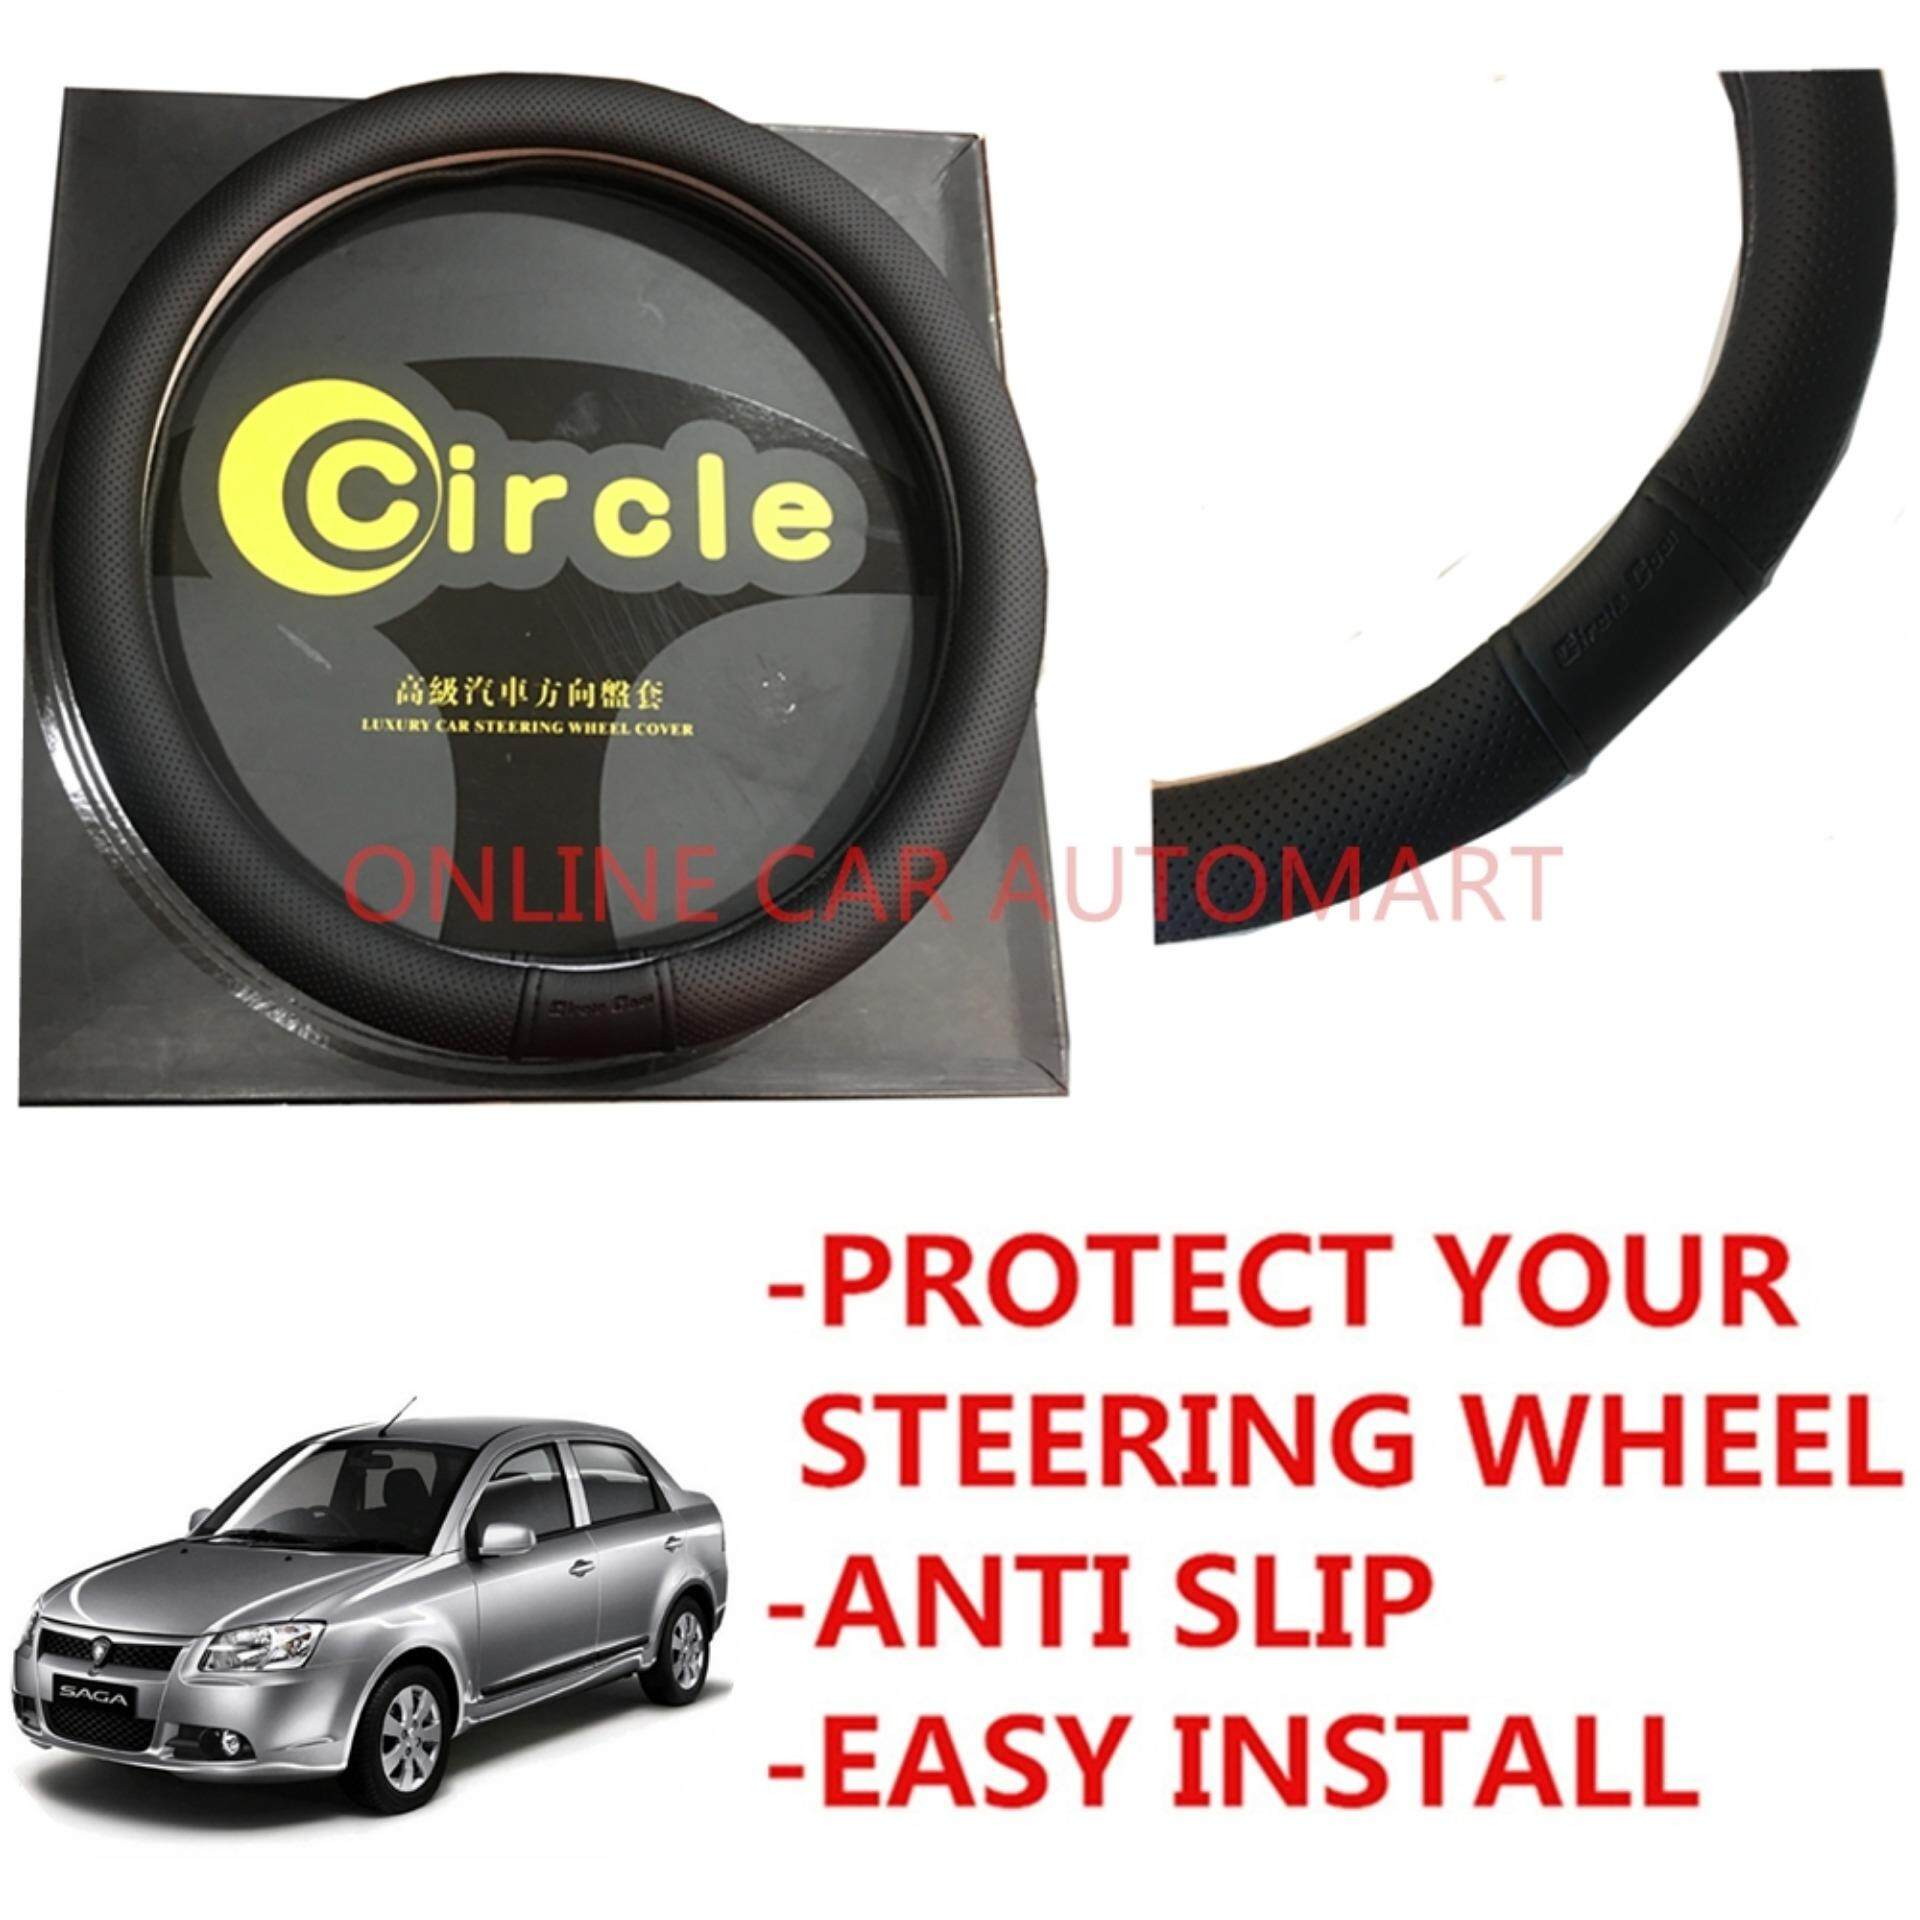 Circle Cool 8763 (BLACK) PVC Leather Breathable Steering Wheel Cover For Proton Saga BLM/BLM FLX